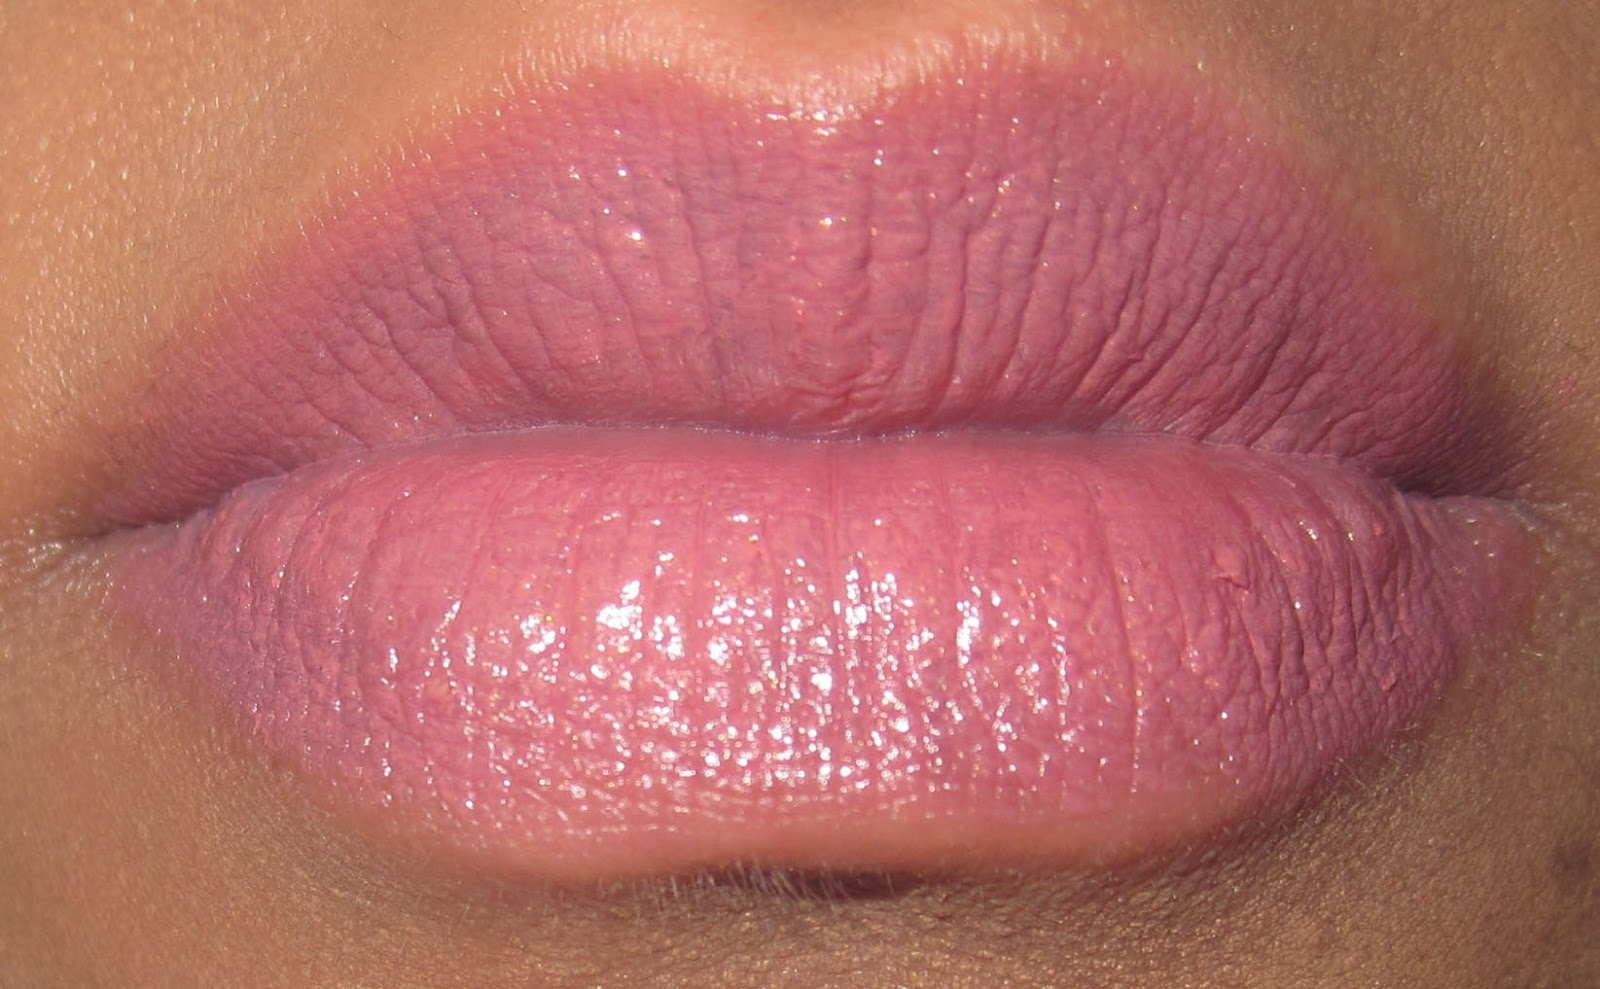 Mac Modesty Lipstick Pictures to Pin on Pinterest - PinsDaddy